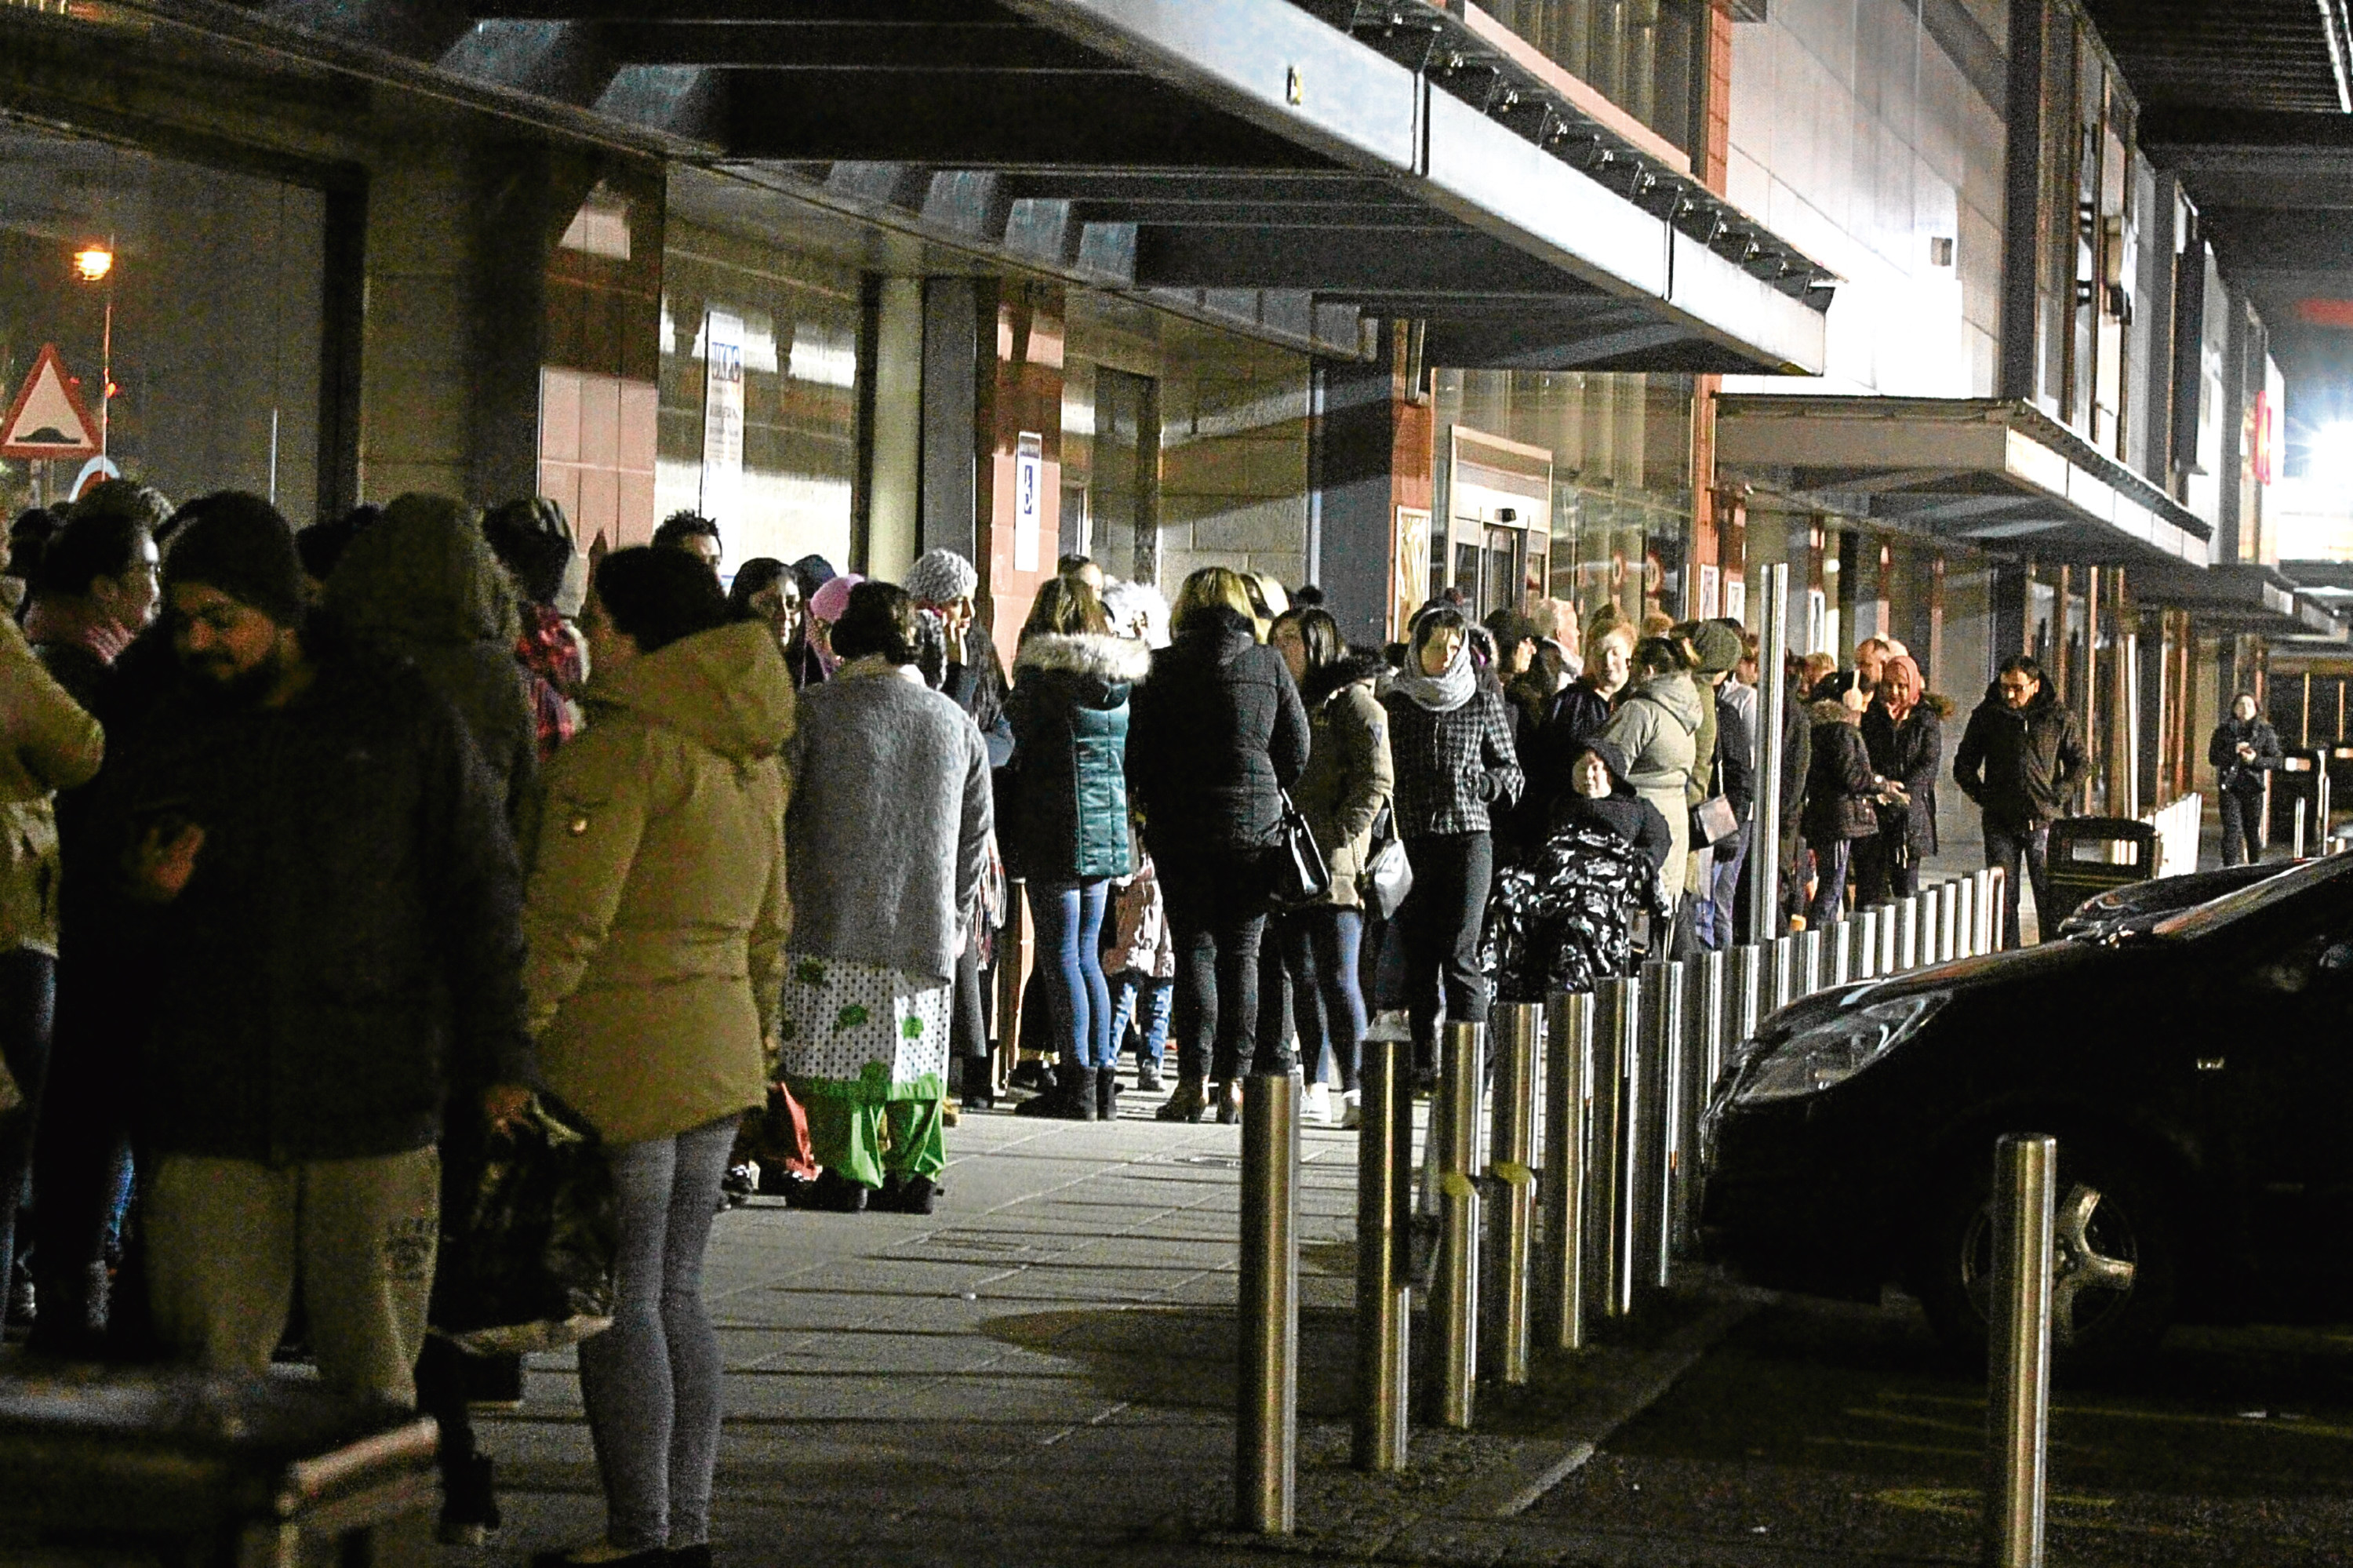 Bargain hunters formed a long queue outside the Next store at the Gallagher Retail Park early on Boxing Day.